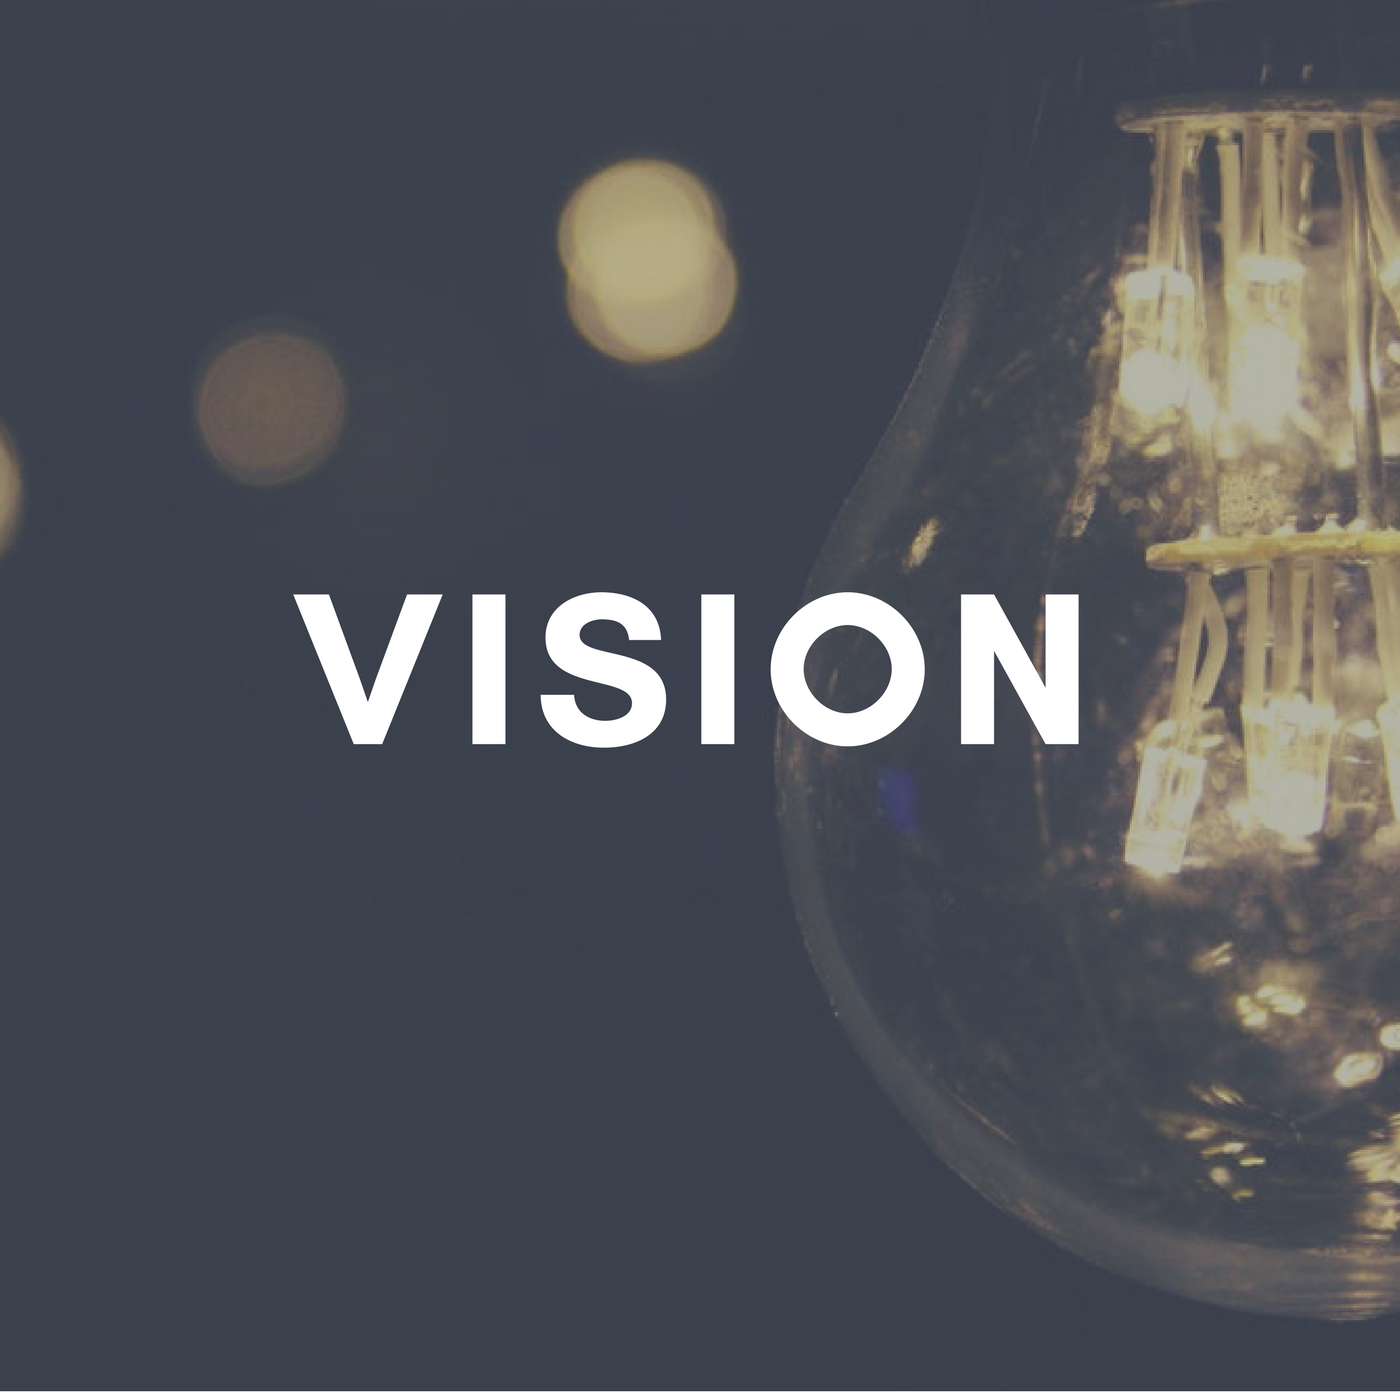 Vision (1).png